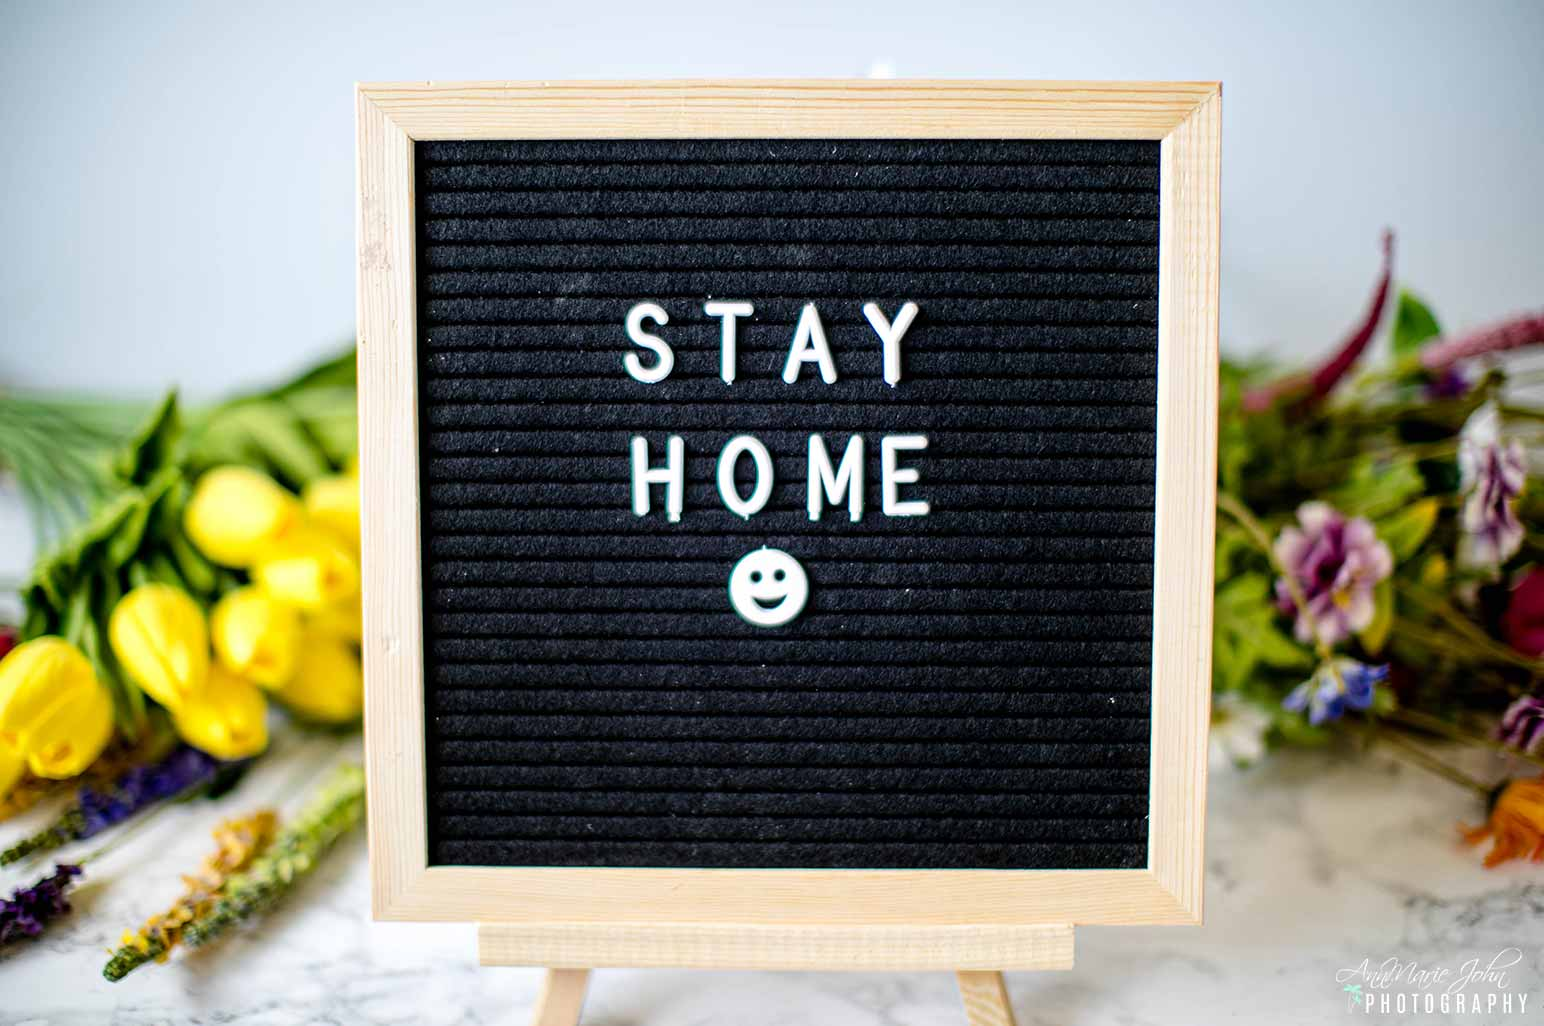 Stay Home Board